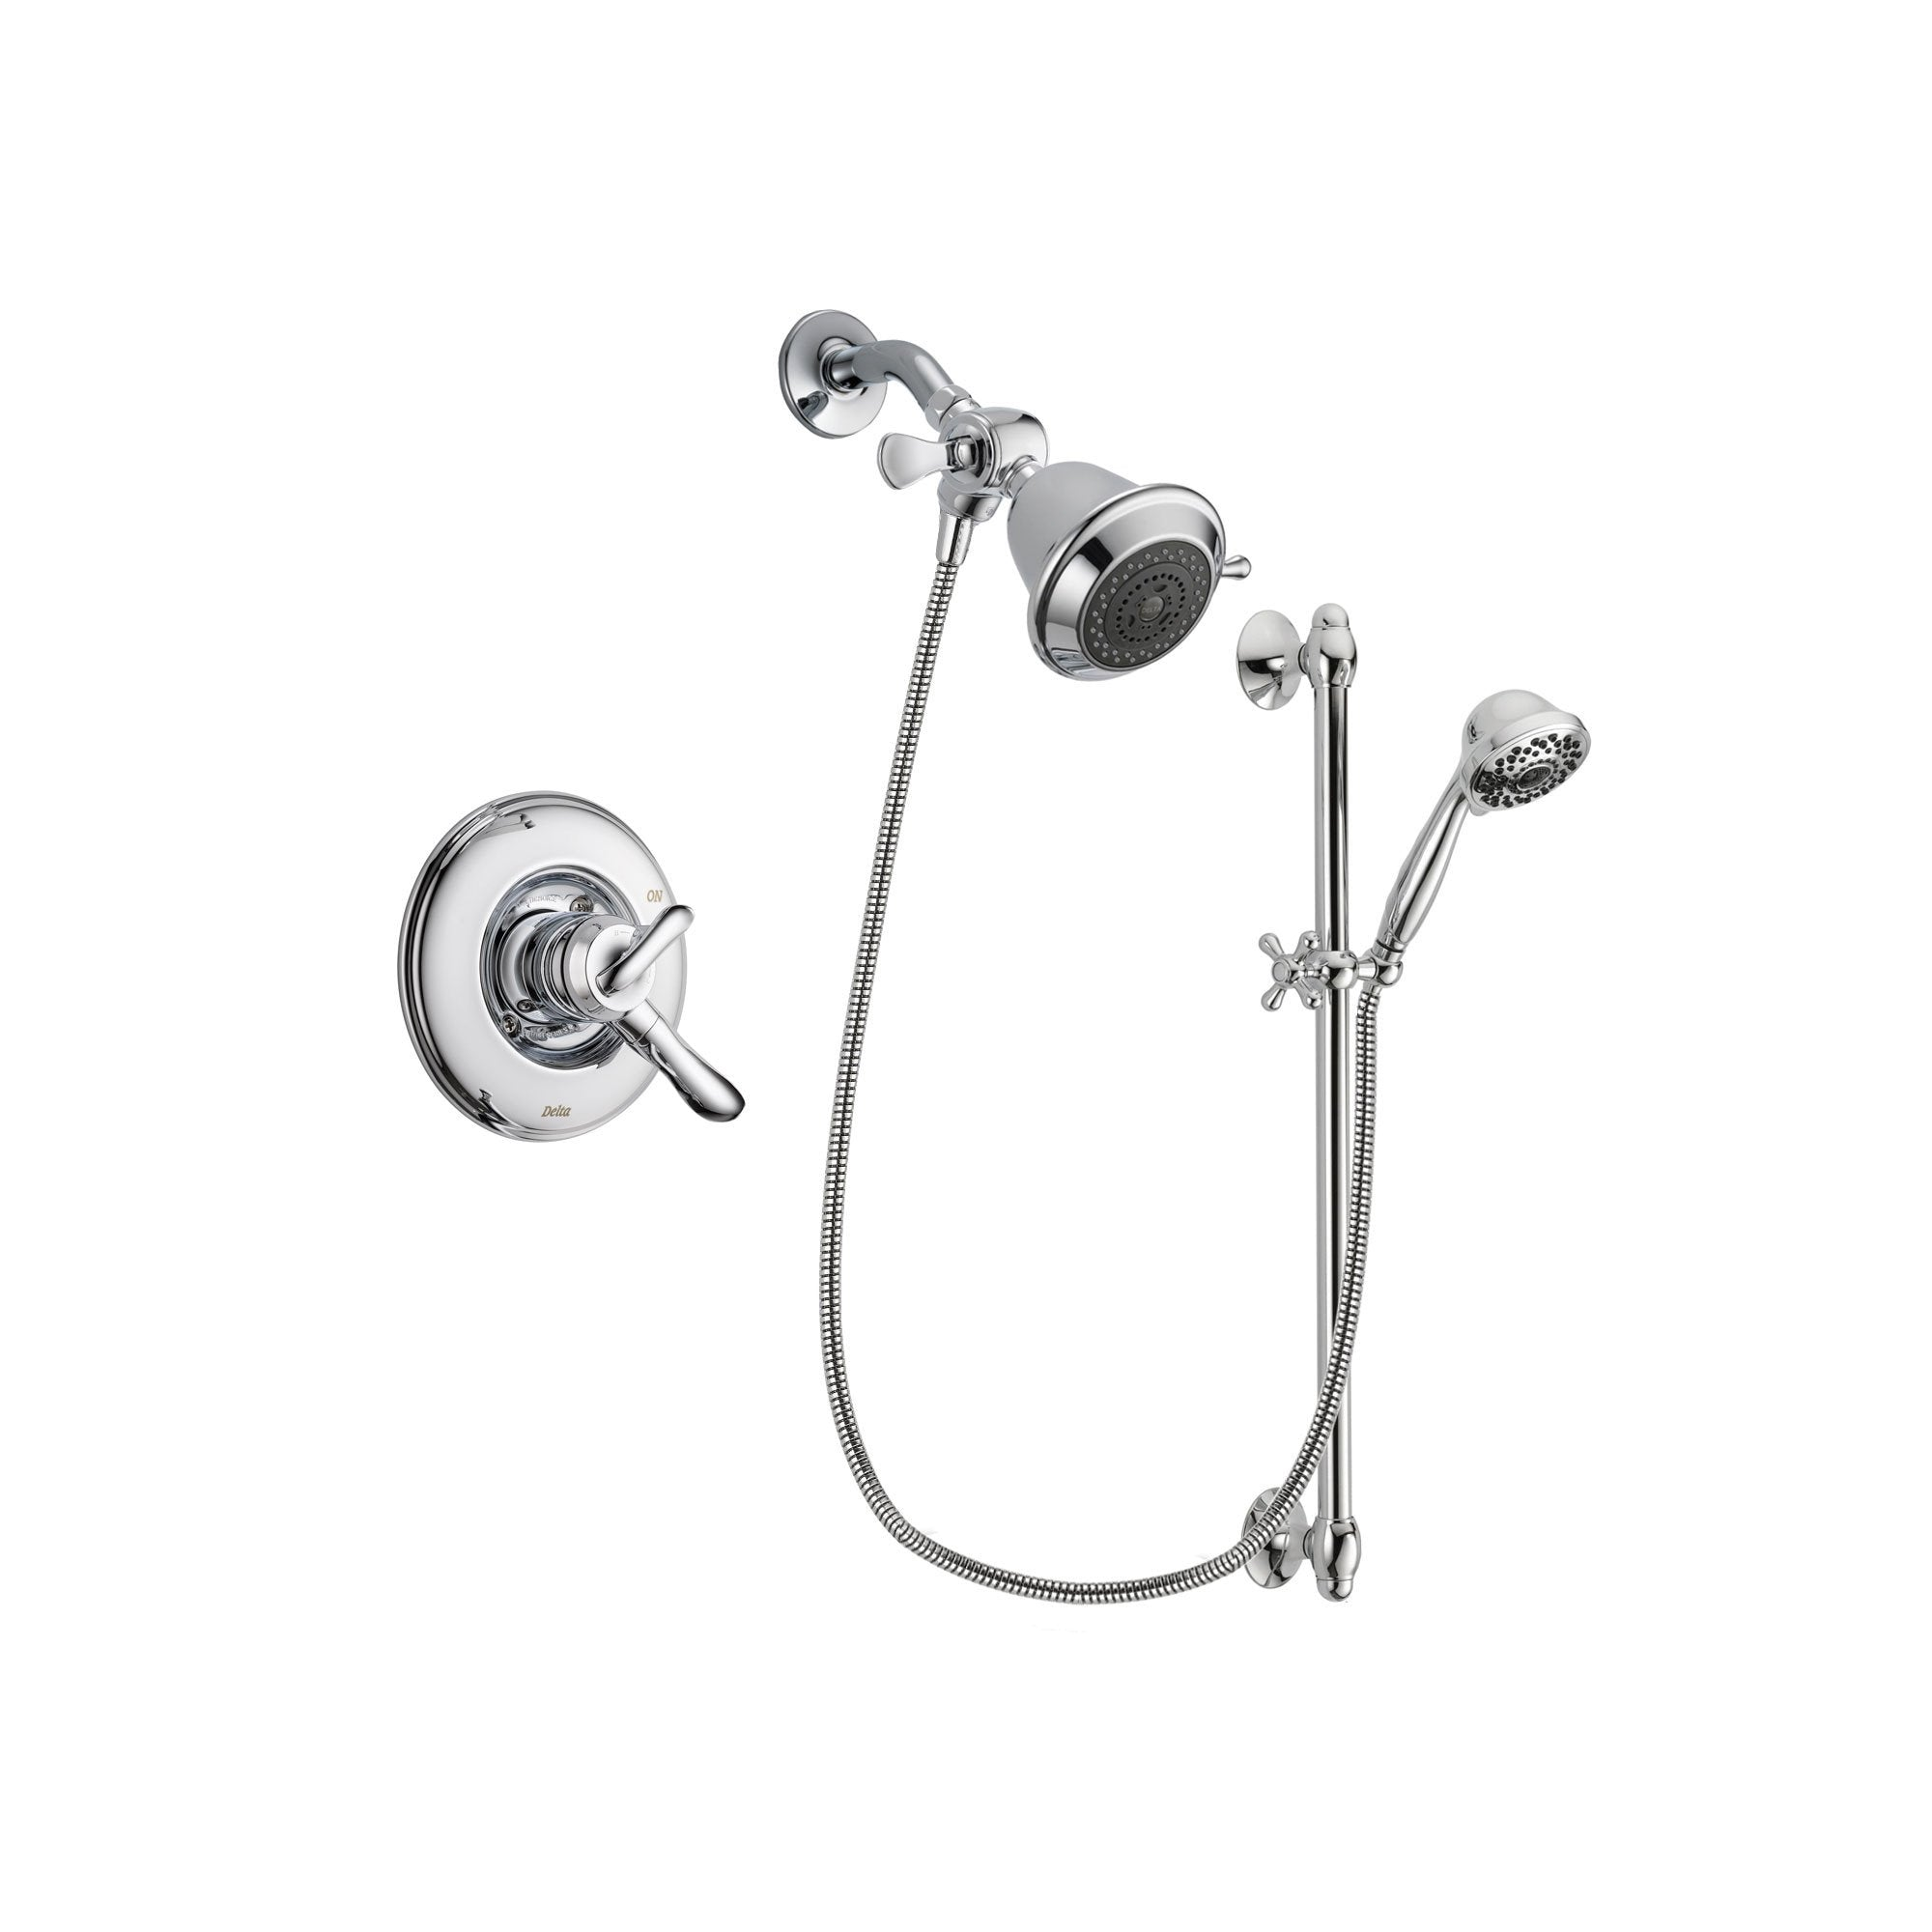 Delta Linden Chrome Shower Faucet System w/ Shower Head and Hand Shower DSP0592V